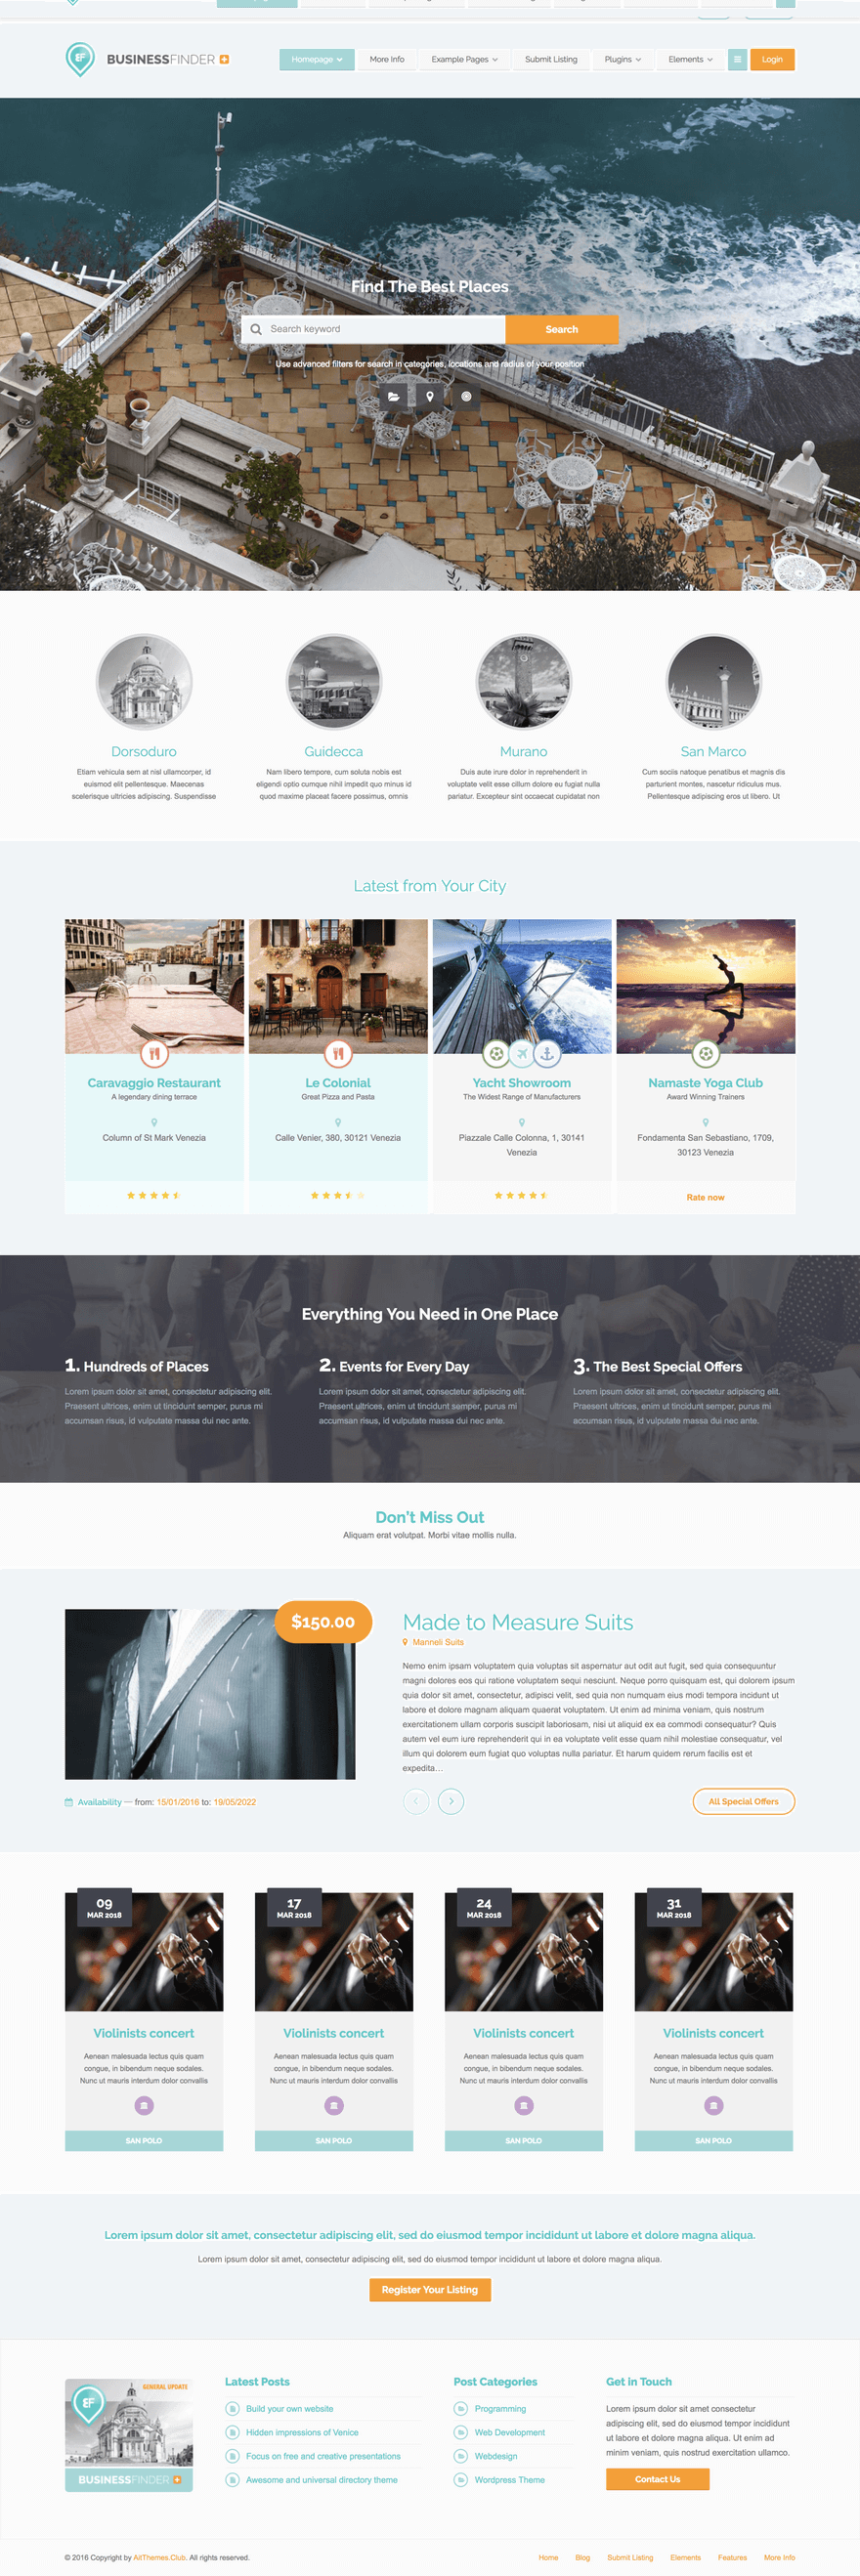 business-finder-directory-wordpress-theme